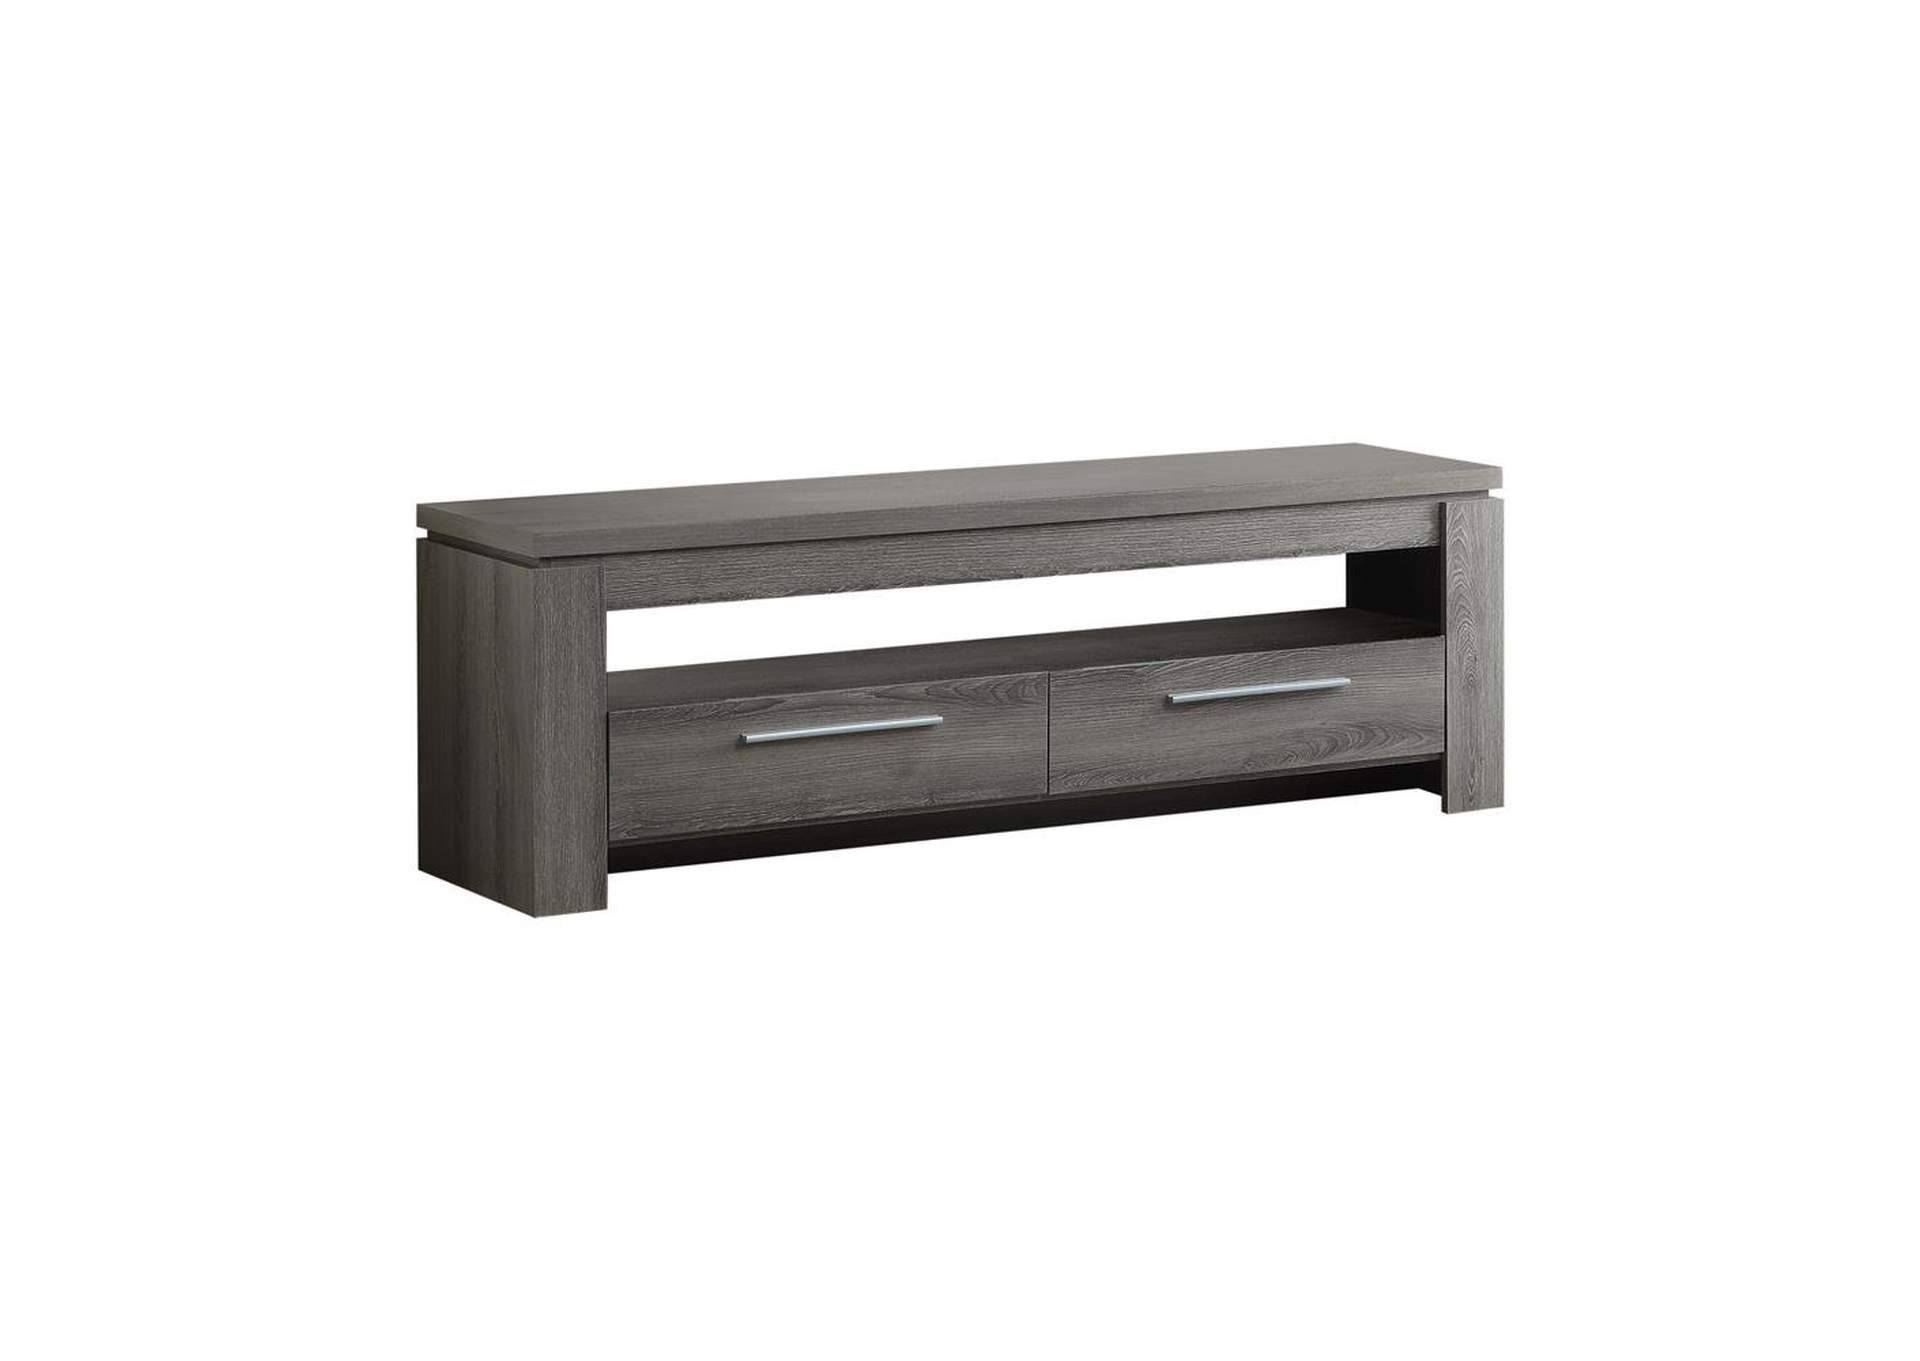 Weathered Grey Transitional Weathered Grey TV Console,Coaster Furniture